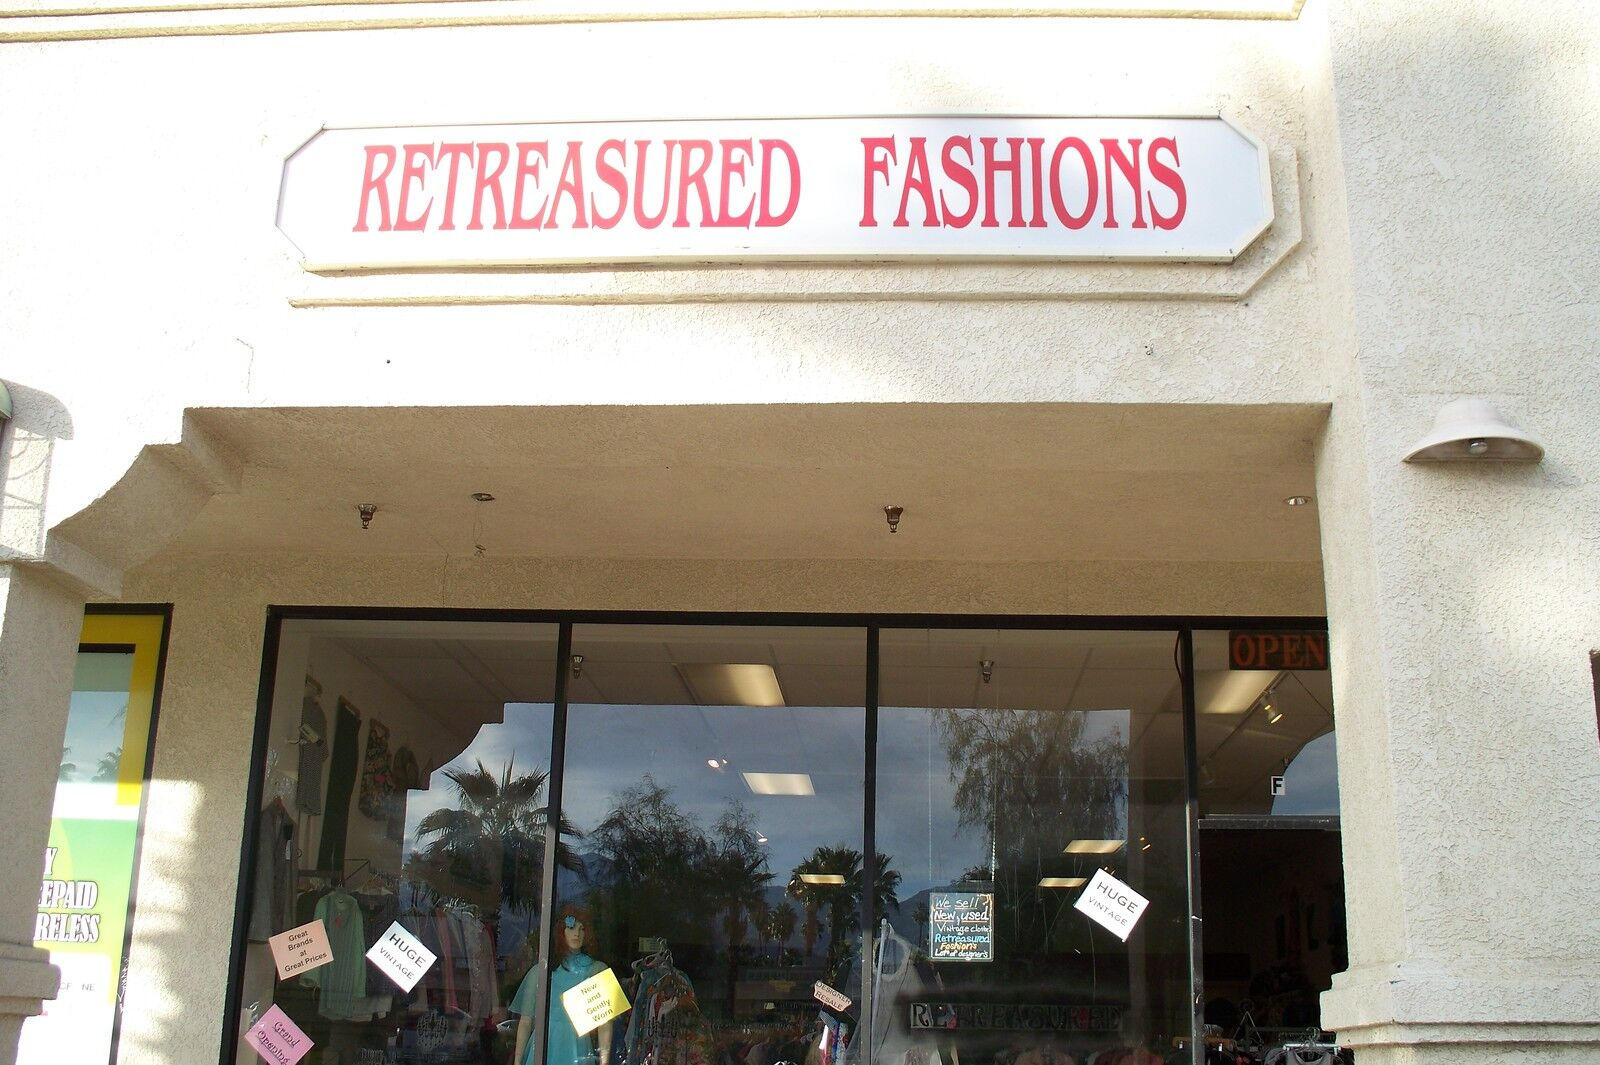 Retreasured Fashions